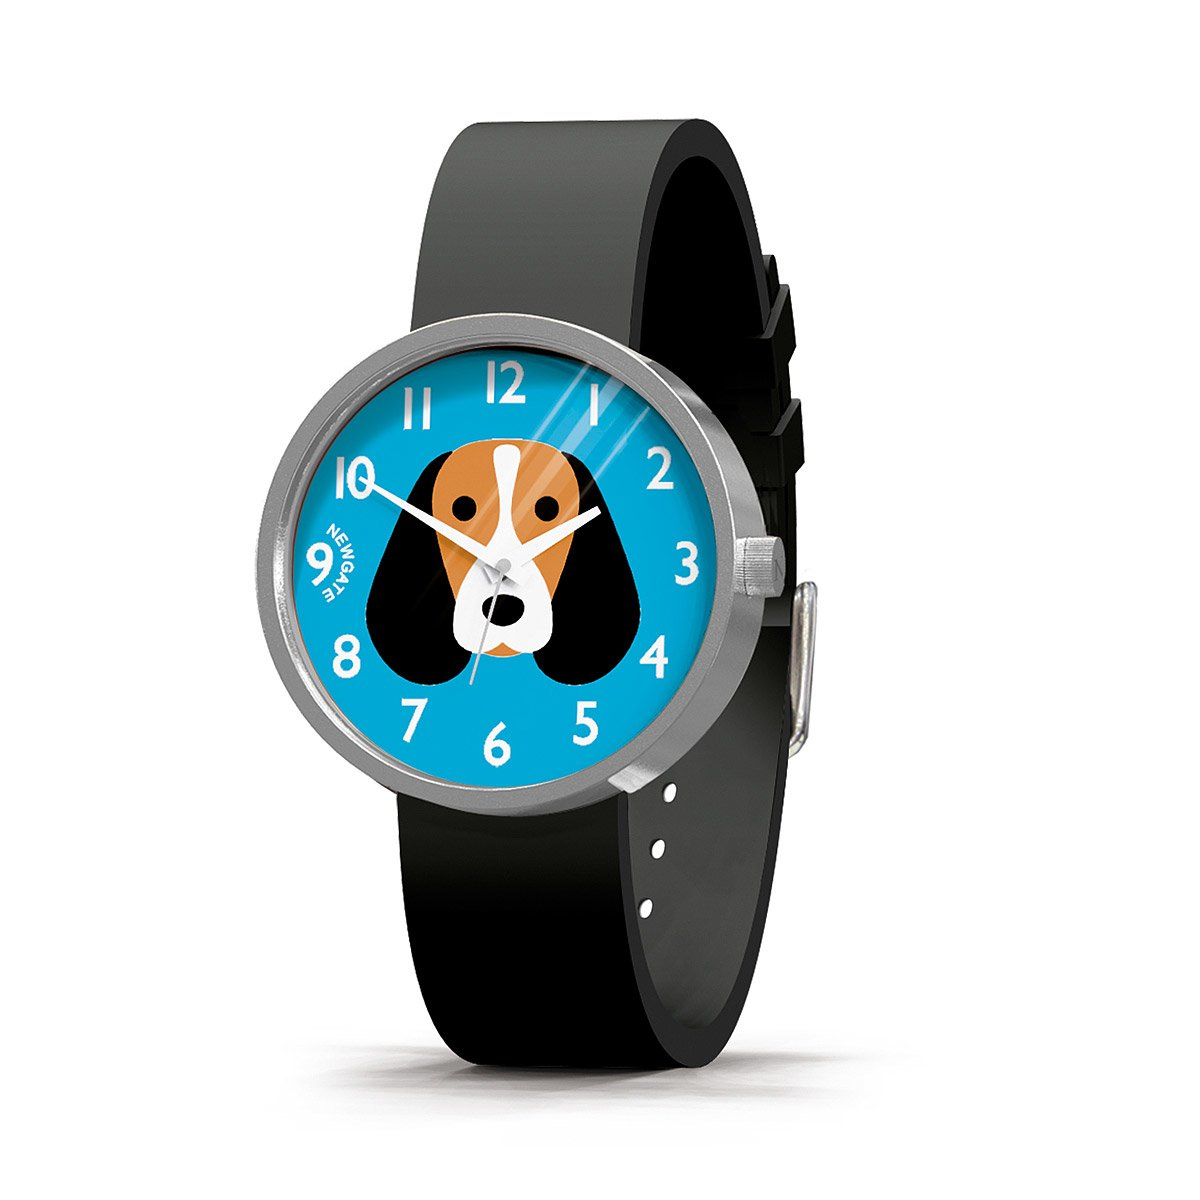 watch watches mindful friendly free cruelty design animal aubry leather vegan modern